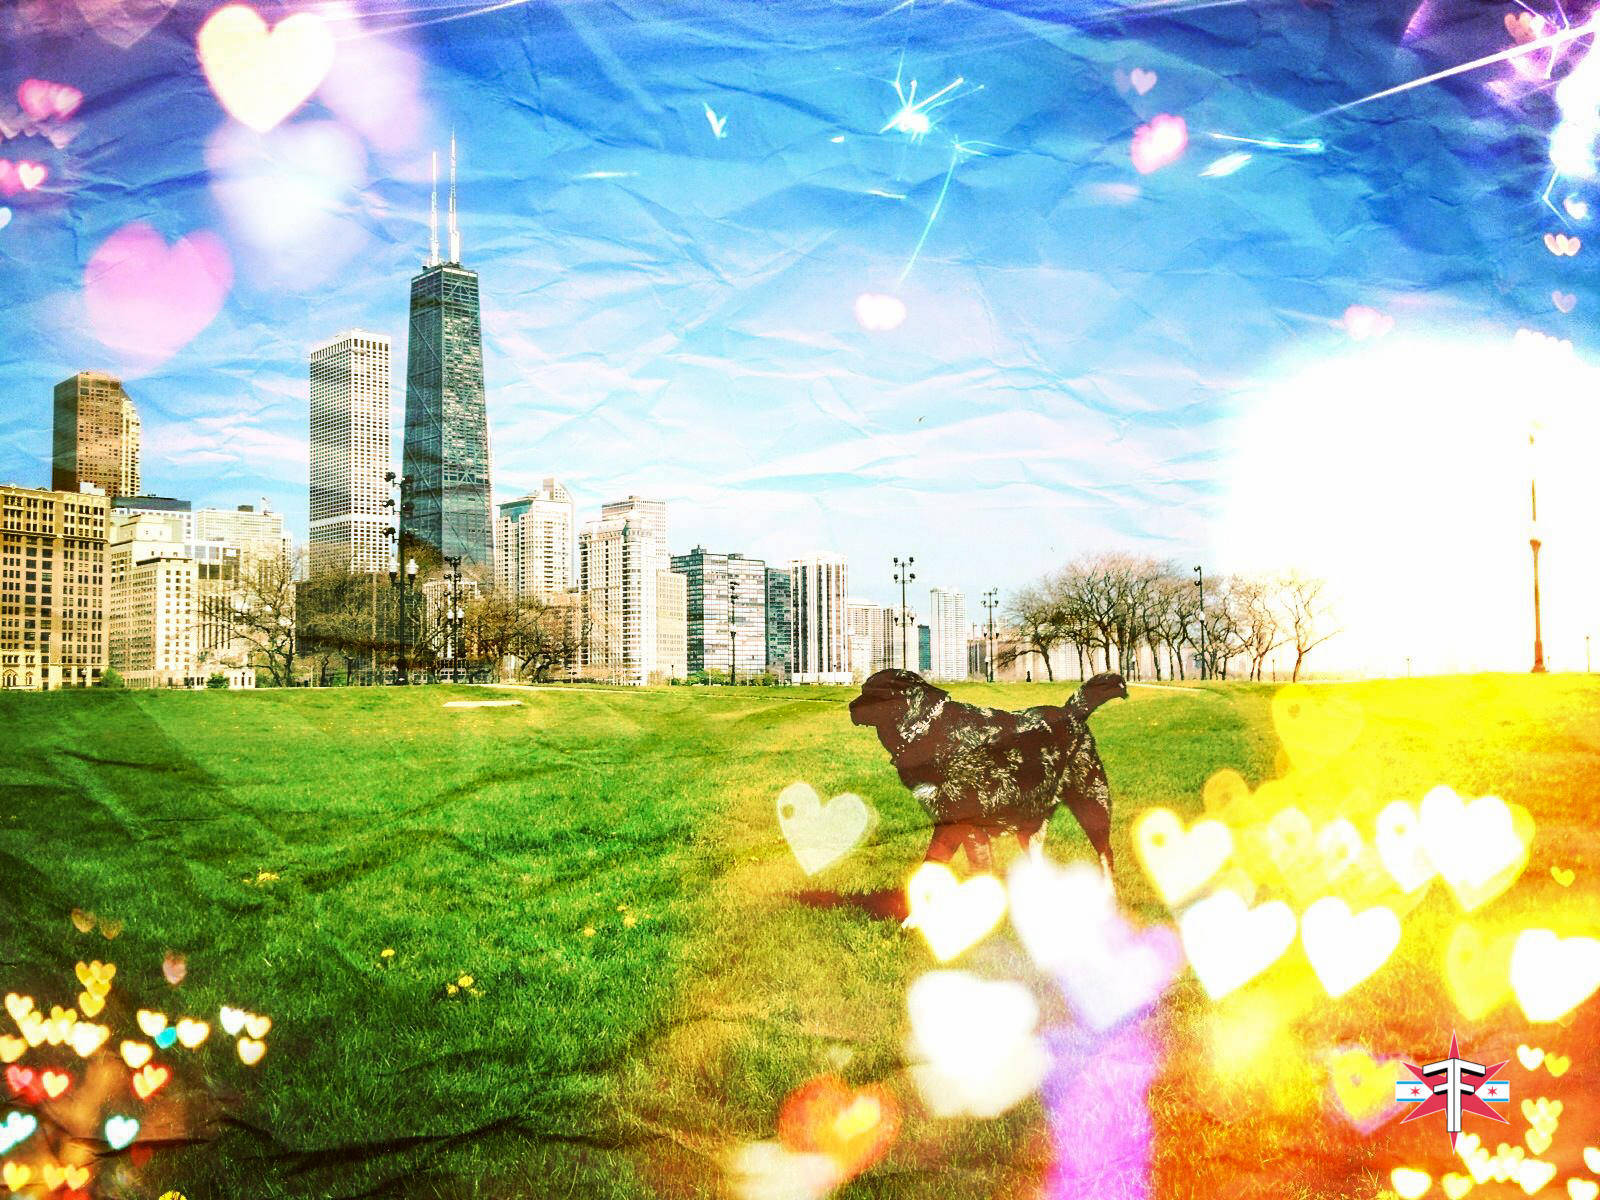 chicago downtown loop sears tower hancock buildings towers trippy vibrant colors abstract skyline cityscape eric formato formatografia fotografia arte photography color photography fine art design-5.jpg